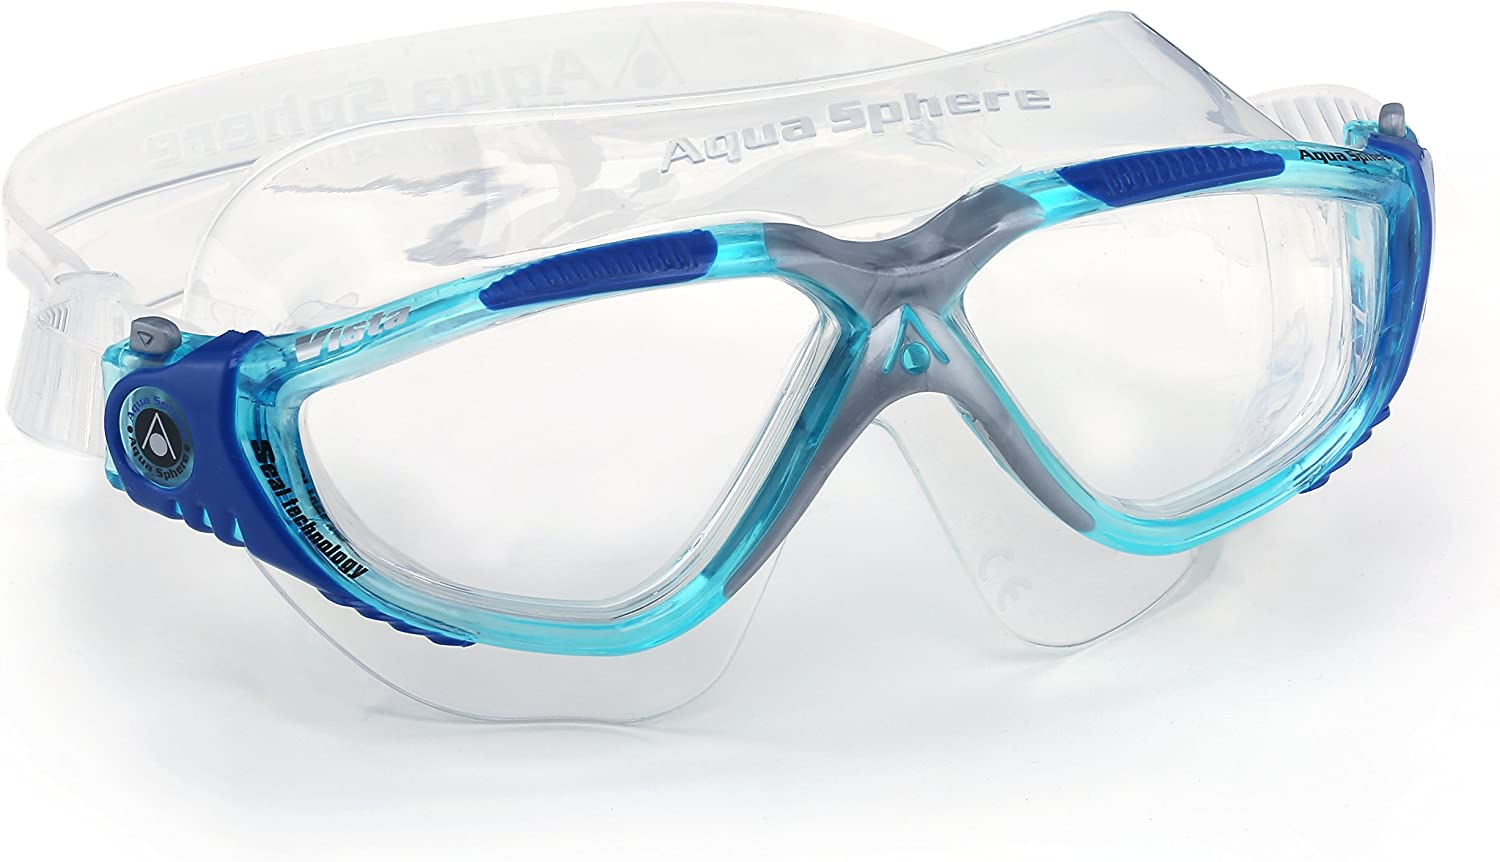 Amazon.com : Aqua Sphere Vista Swim Mask Goggles, Clear, Aqua/Blue/Grey : Swimming Goggles : Sports & Outdoors